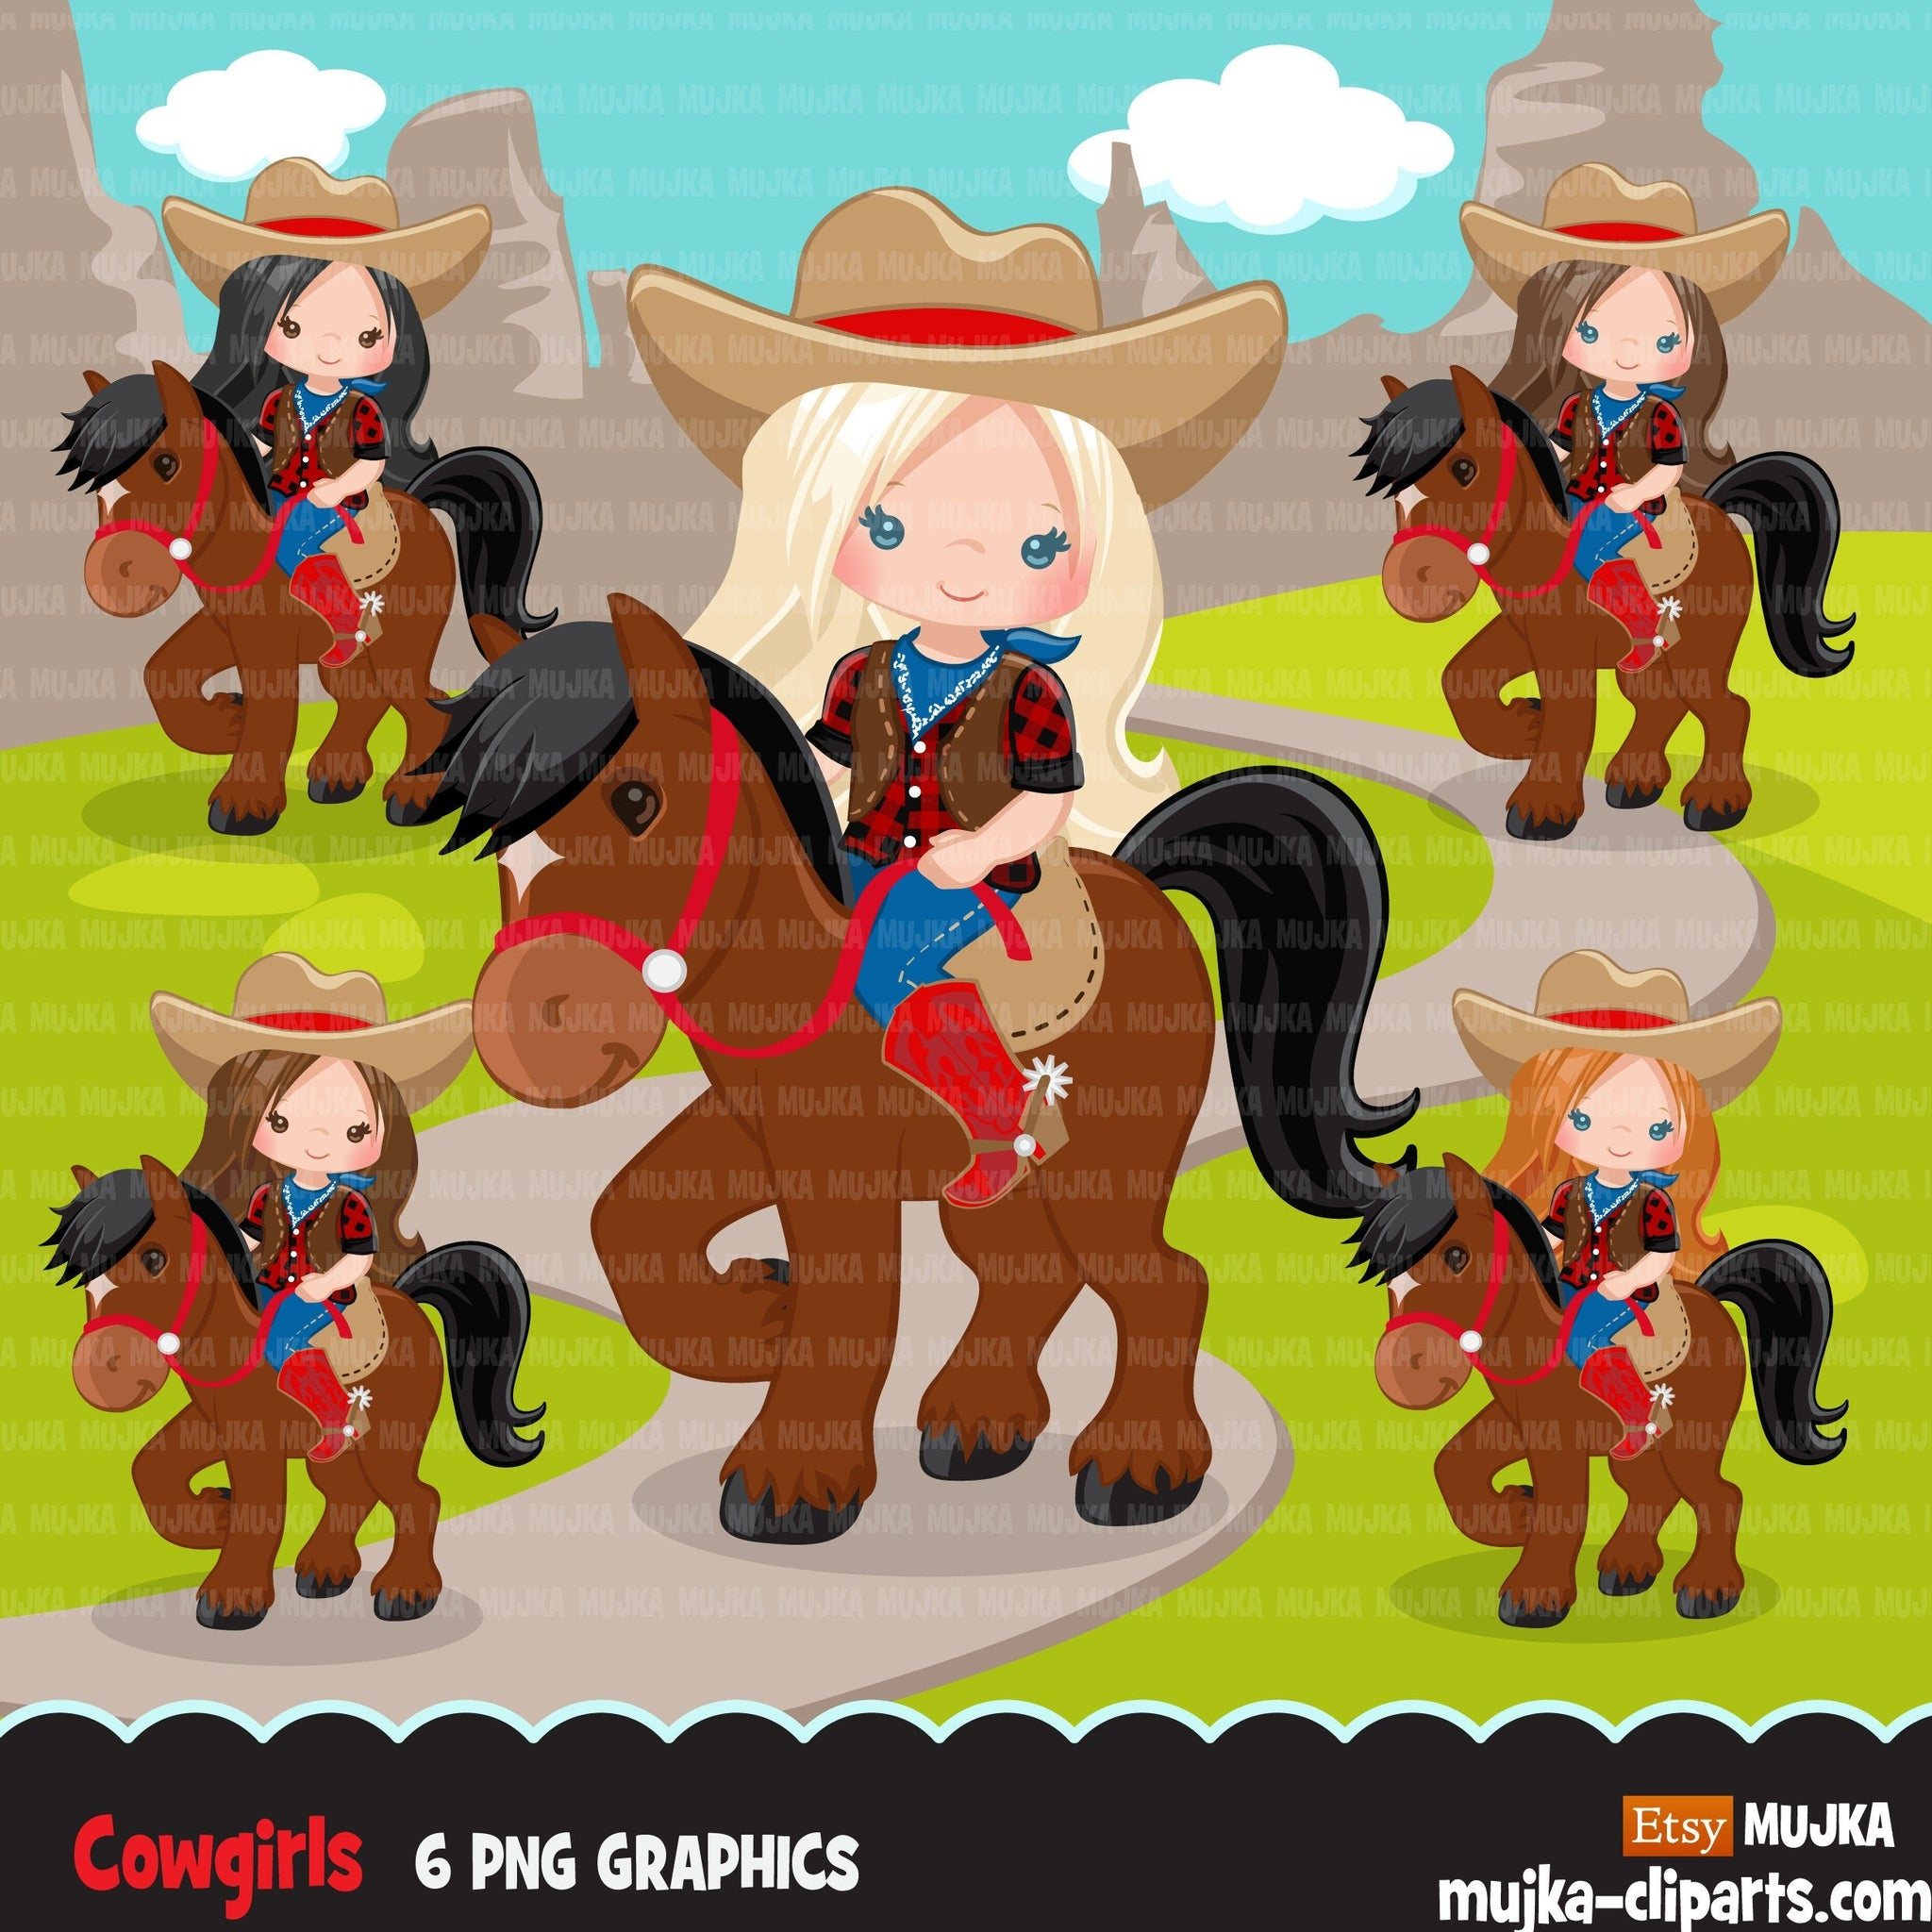 Cowgirl with horse clipart, farmer characters country farm graphics